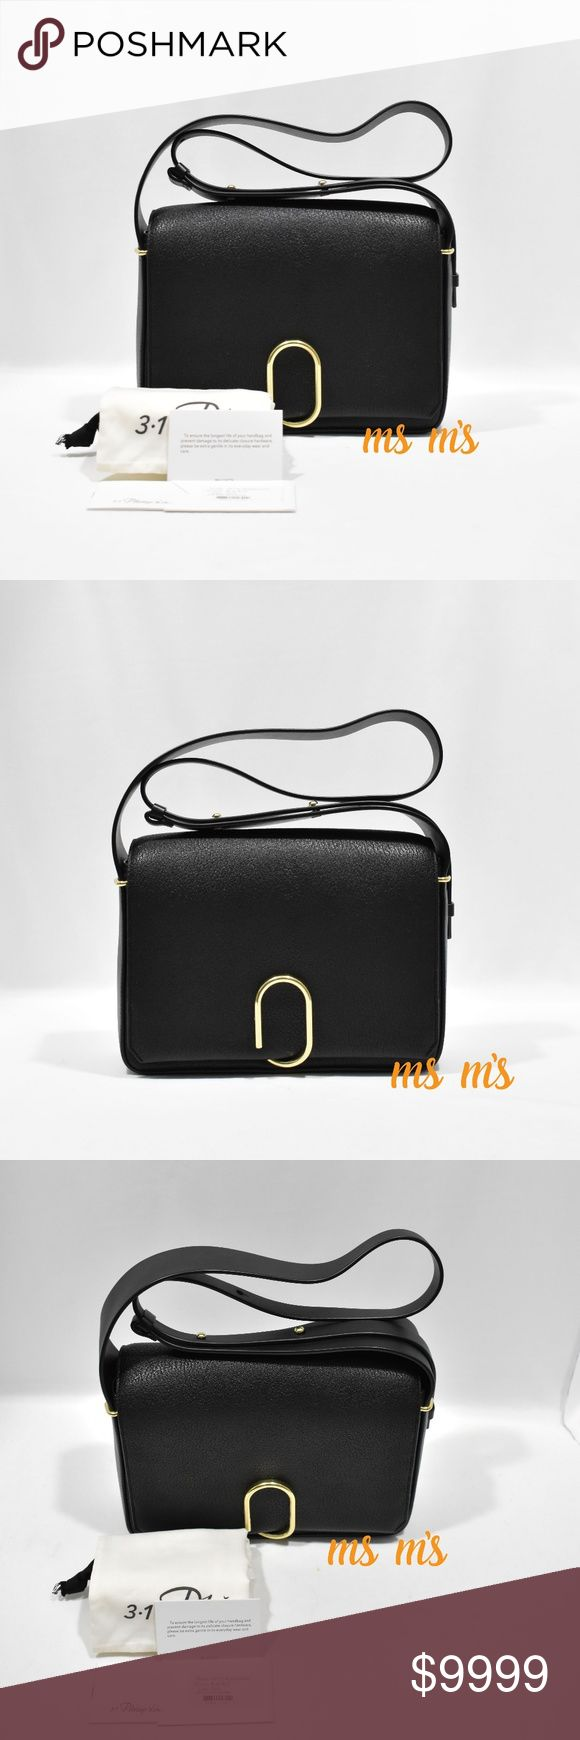 """NWT 3.1 Phillip Lim black leather cross body 3.1 Phillip Lim two-tone goat leather messenger bag. Adjustable shoulder strap; 13-17"""" drop. Flap top with brass clip closure. Fabric lining; one zip pocket. 7""""H x 10.5""""W x 3""""D. """"Alix"""" is imported of French material. 3.1 Phillip Lim Bags Crossbody Bags"""